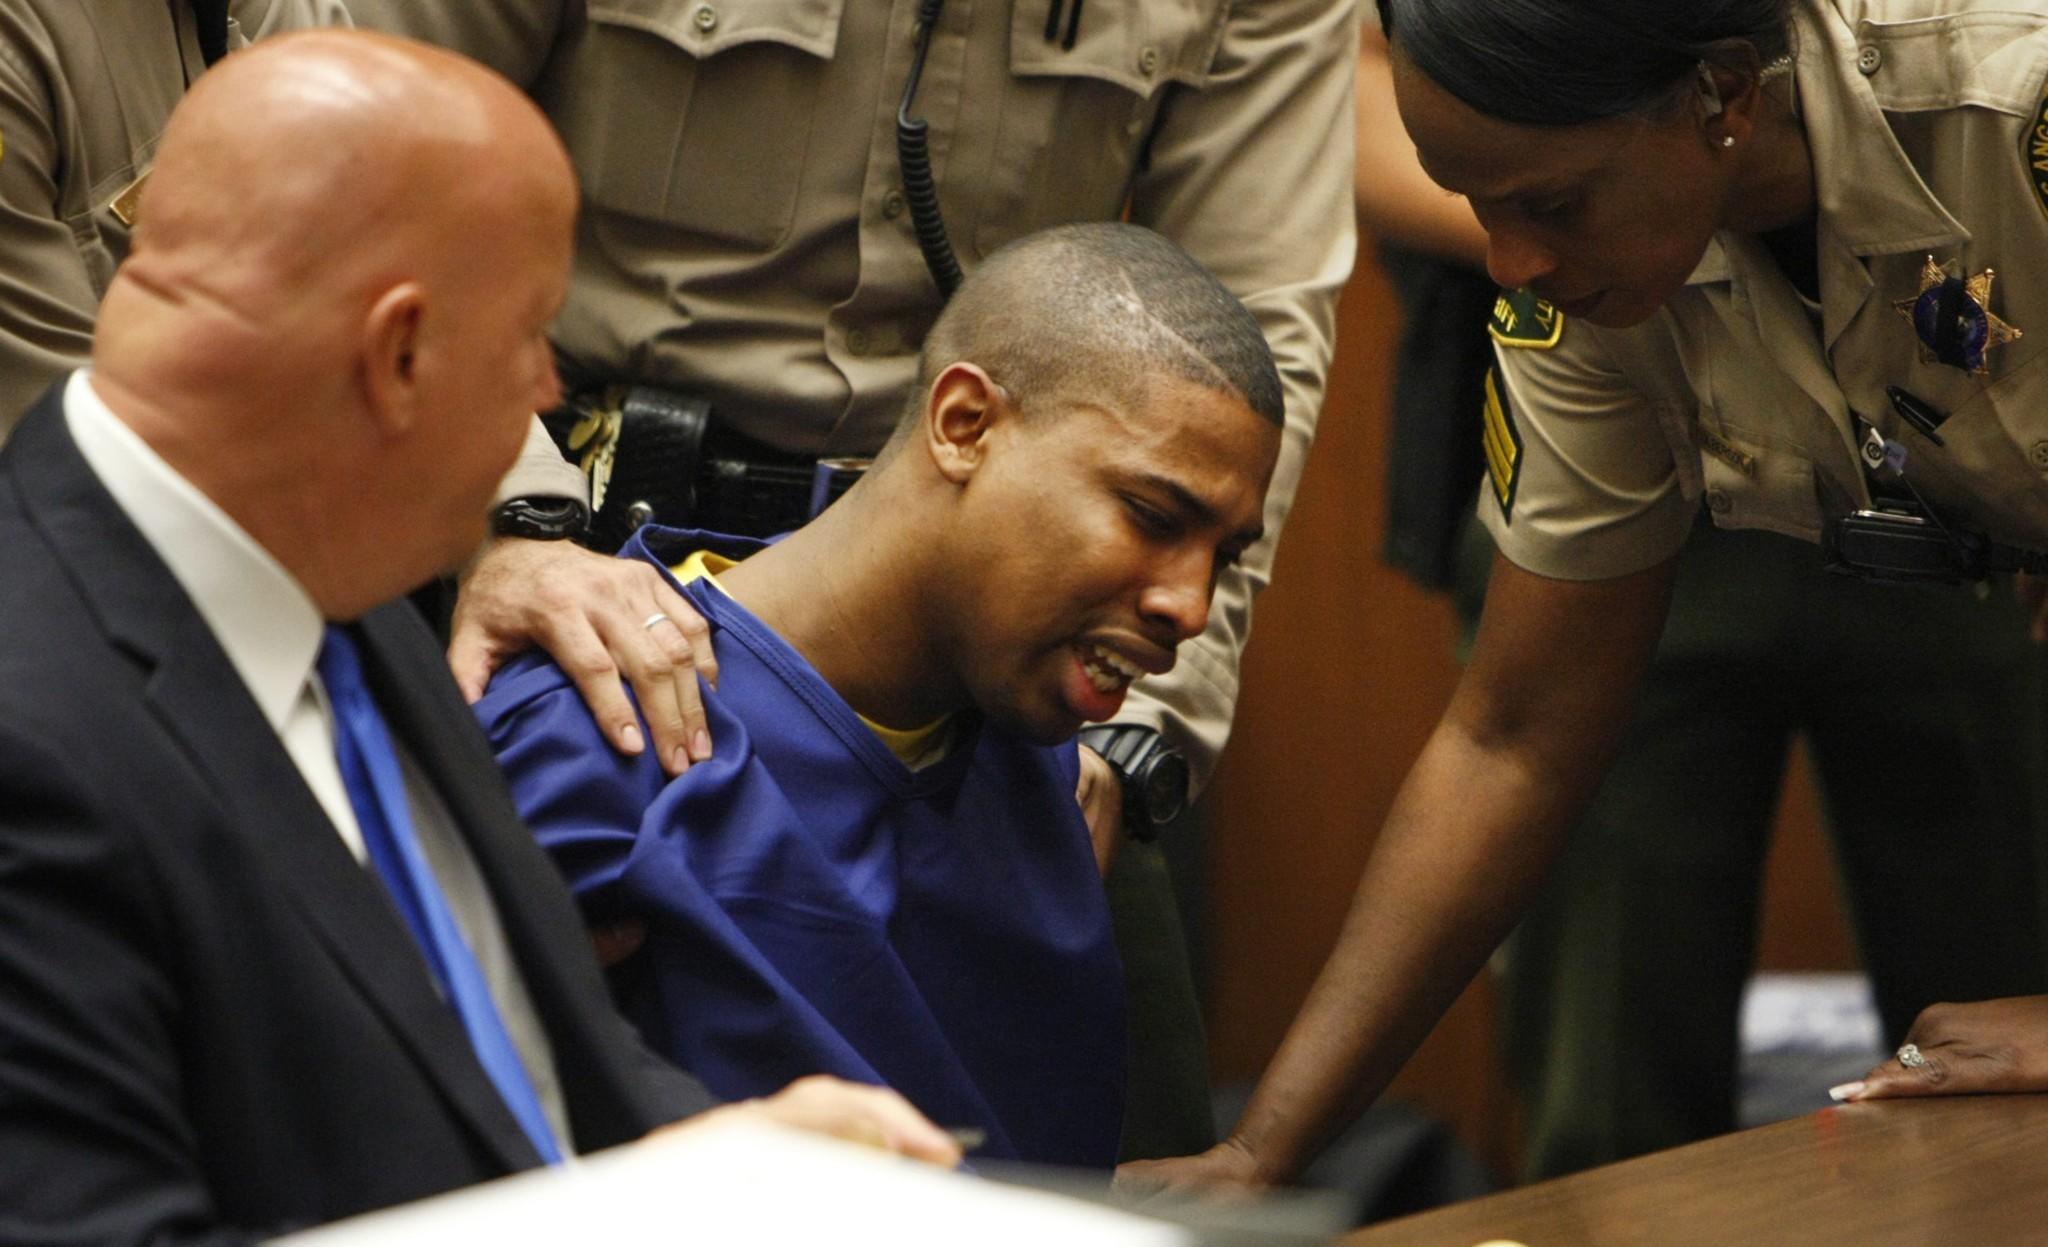 Brandon Spencer breaks down in a Los Angeles courtroom during his sentencing April 18.